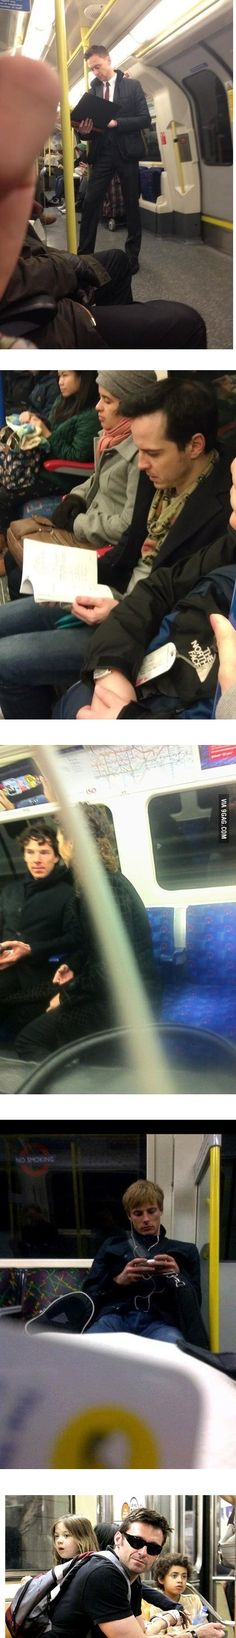 If you need me, I will be in London just riding the subway...never getting off. :)